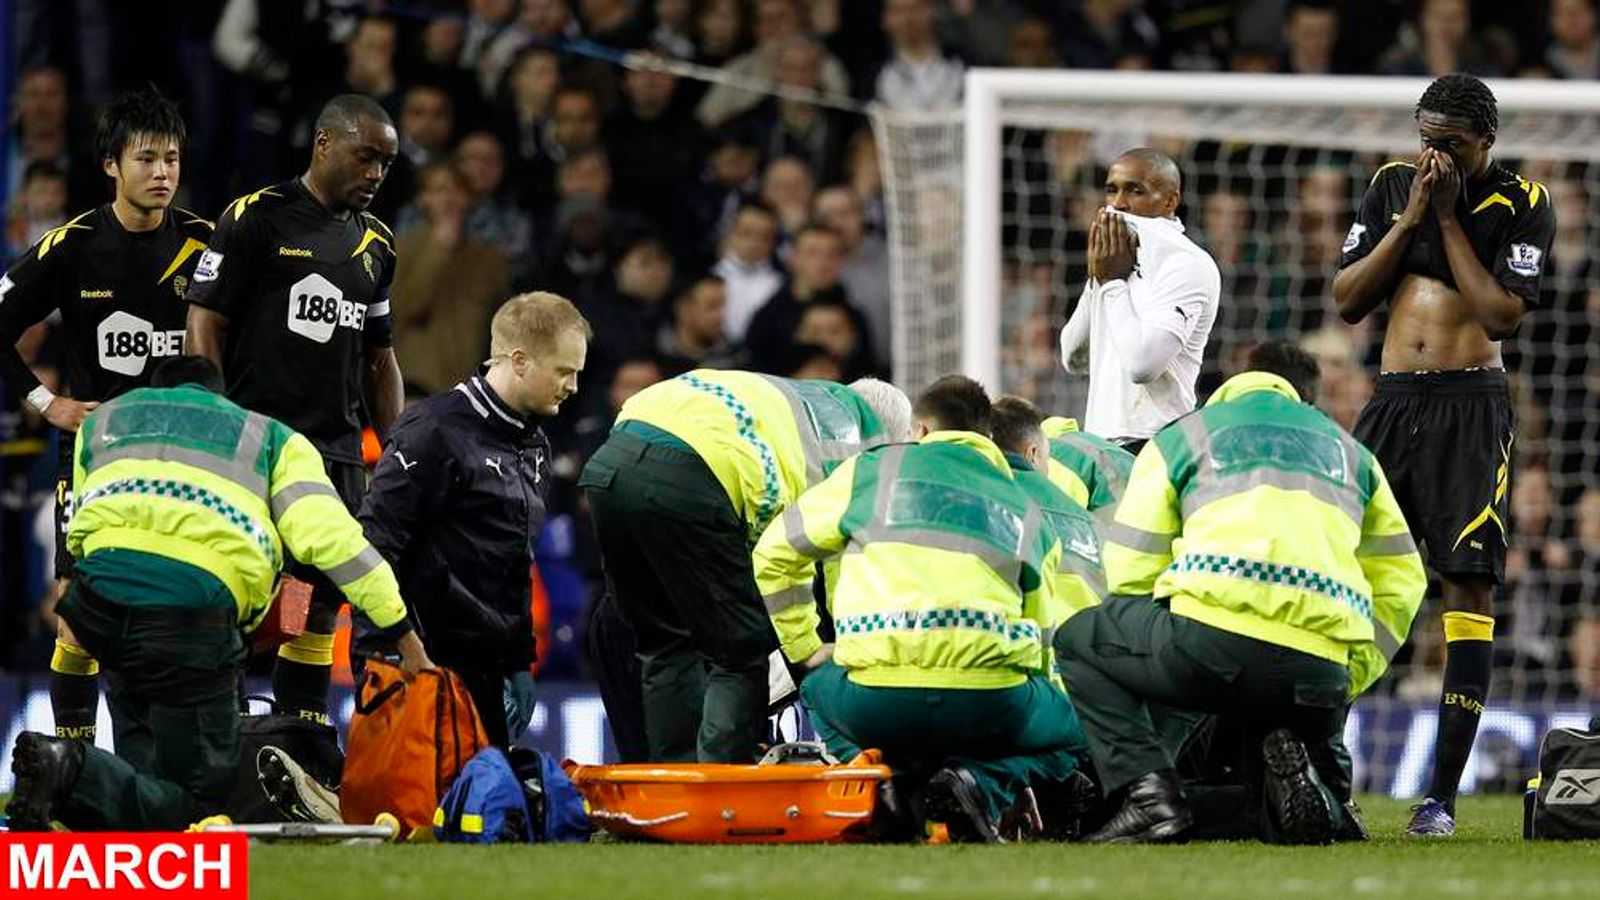 Bolton Wanderers players look on as medical staff attend to Fabrice Muamba after he collapsed on the pitch during their FA Cup quarter-final soccer match against Tottenham Hotspur at White Hart Lane in London